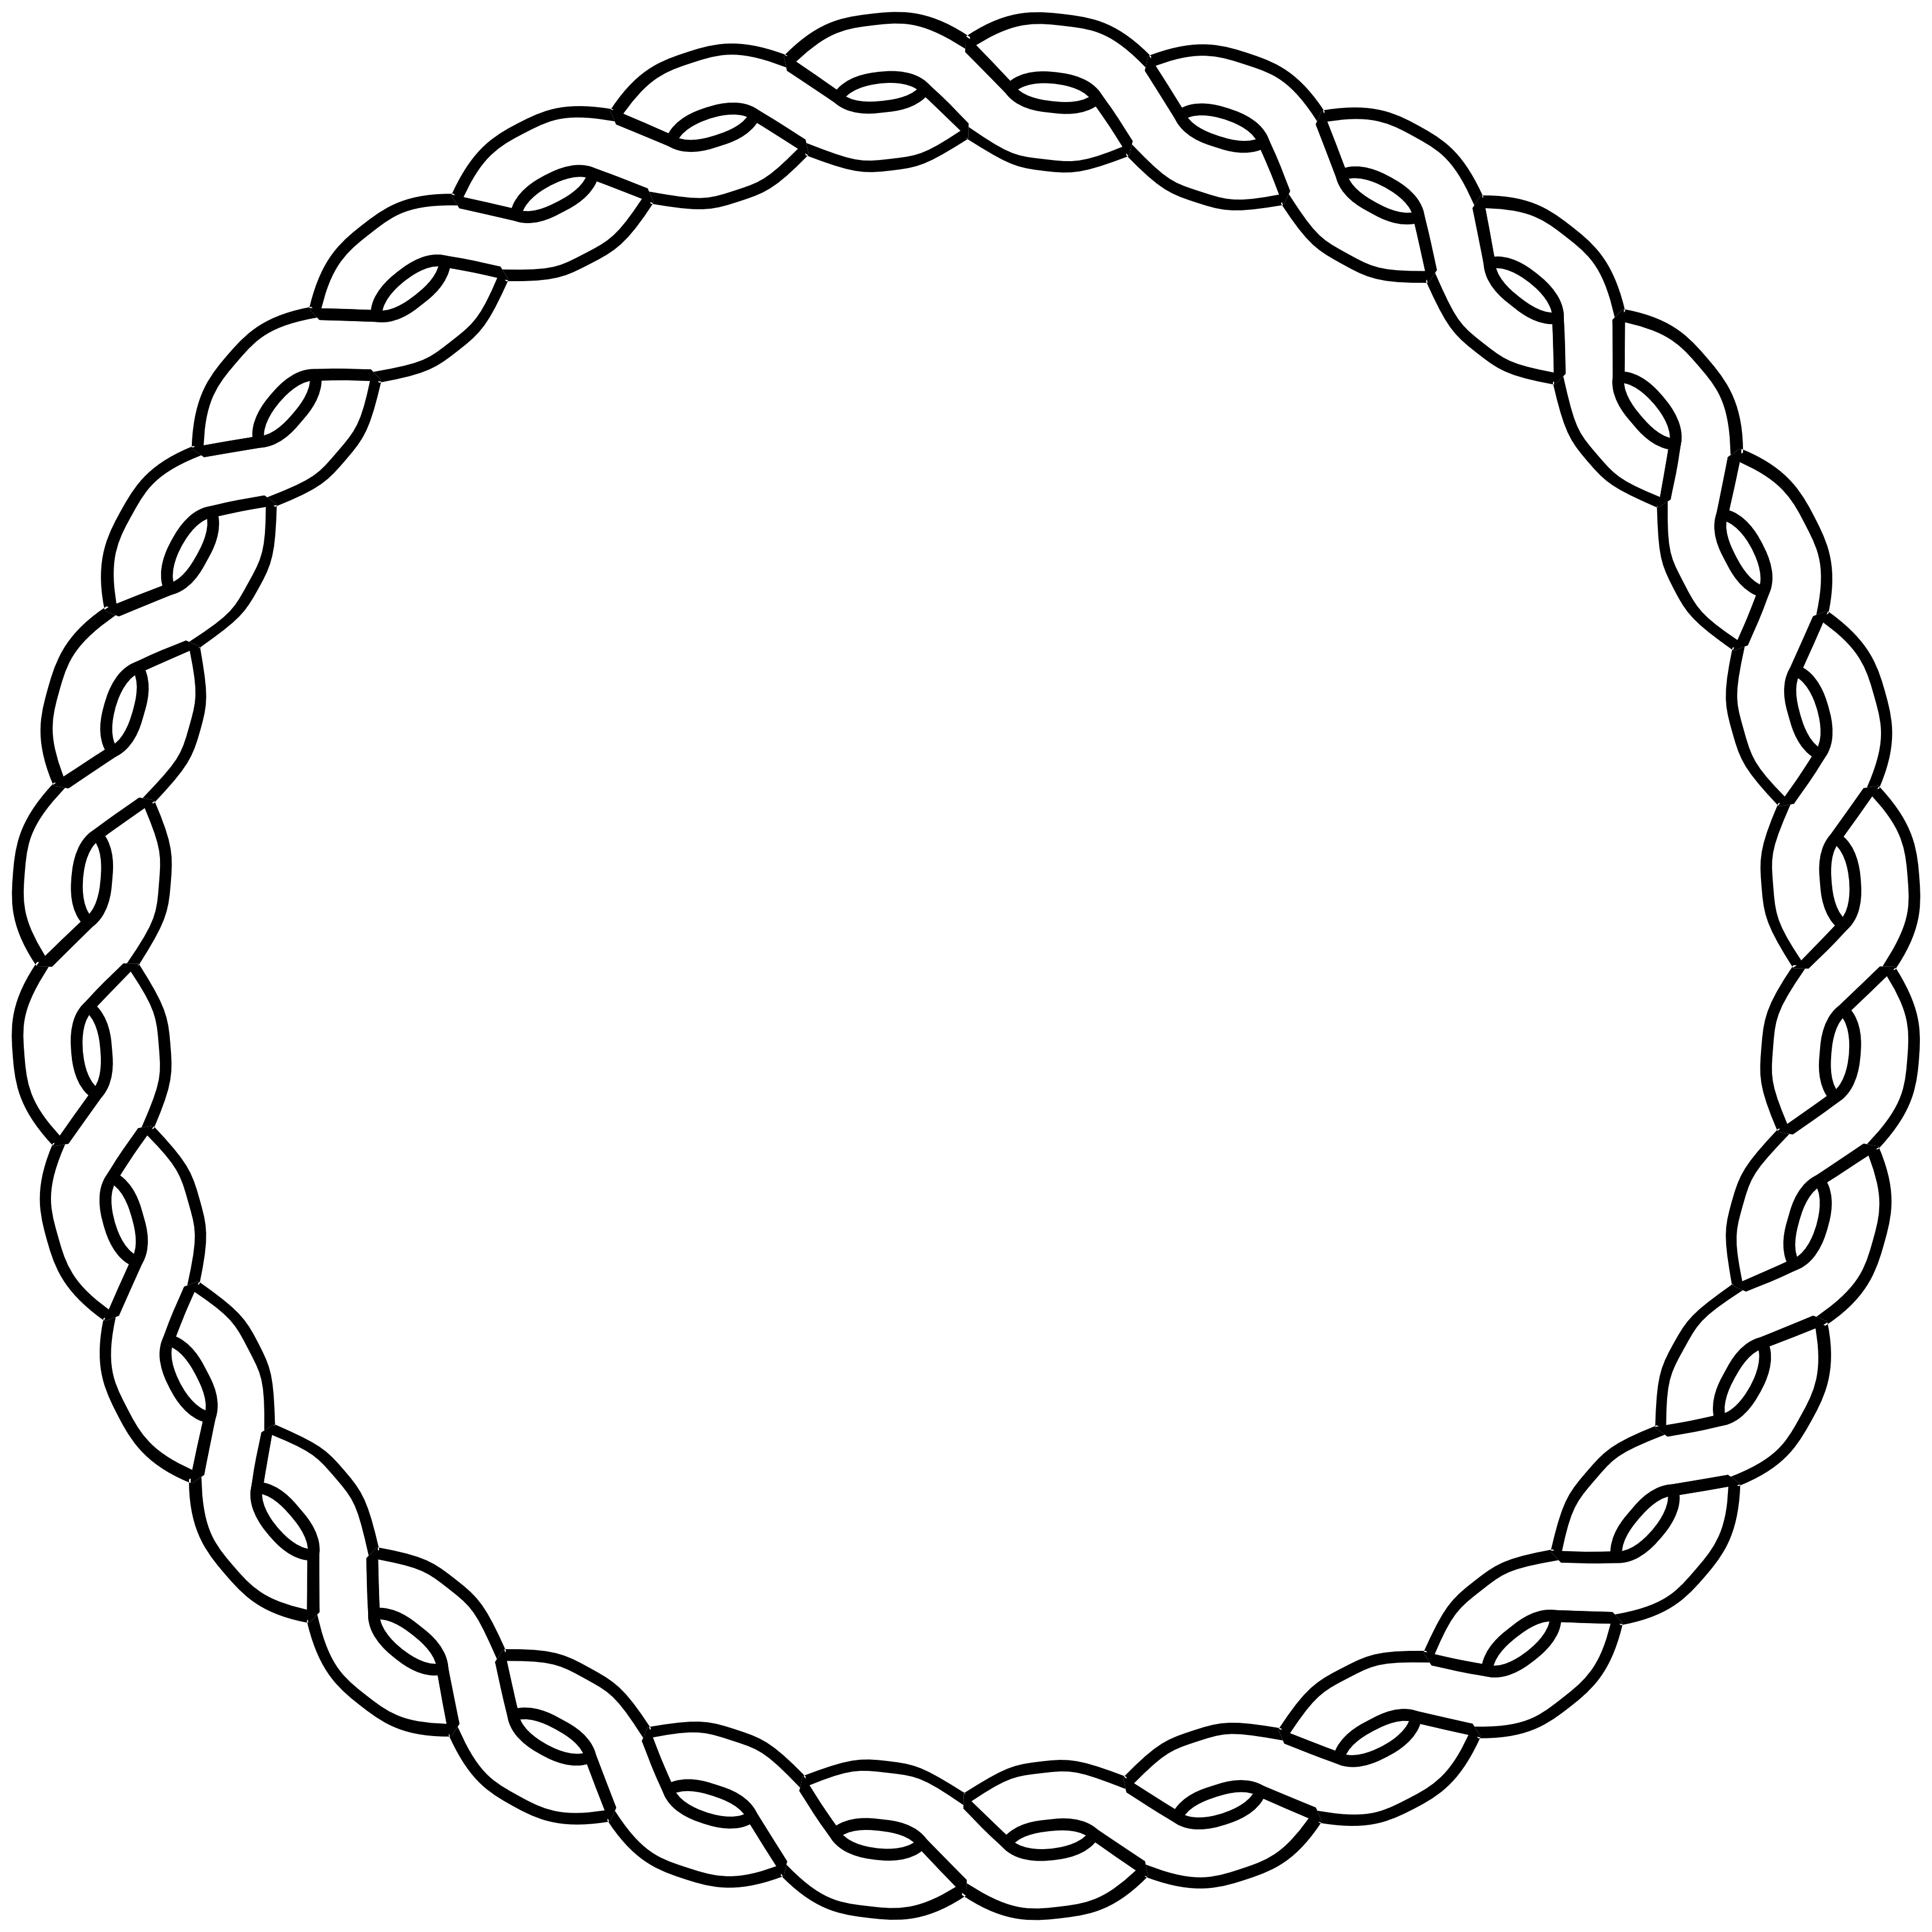 Drawn rope cowboy ClipArt rope circle  white